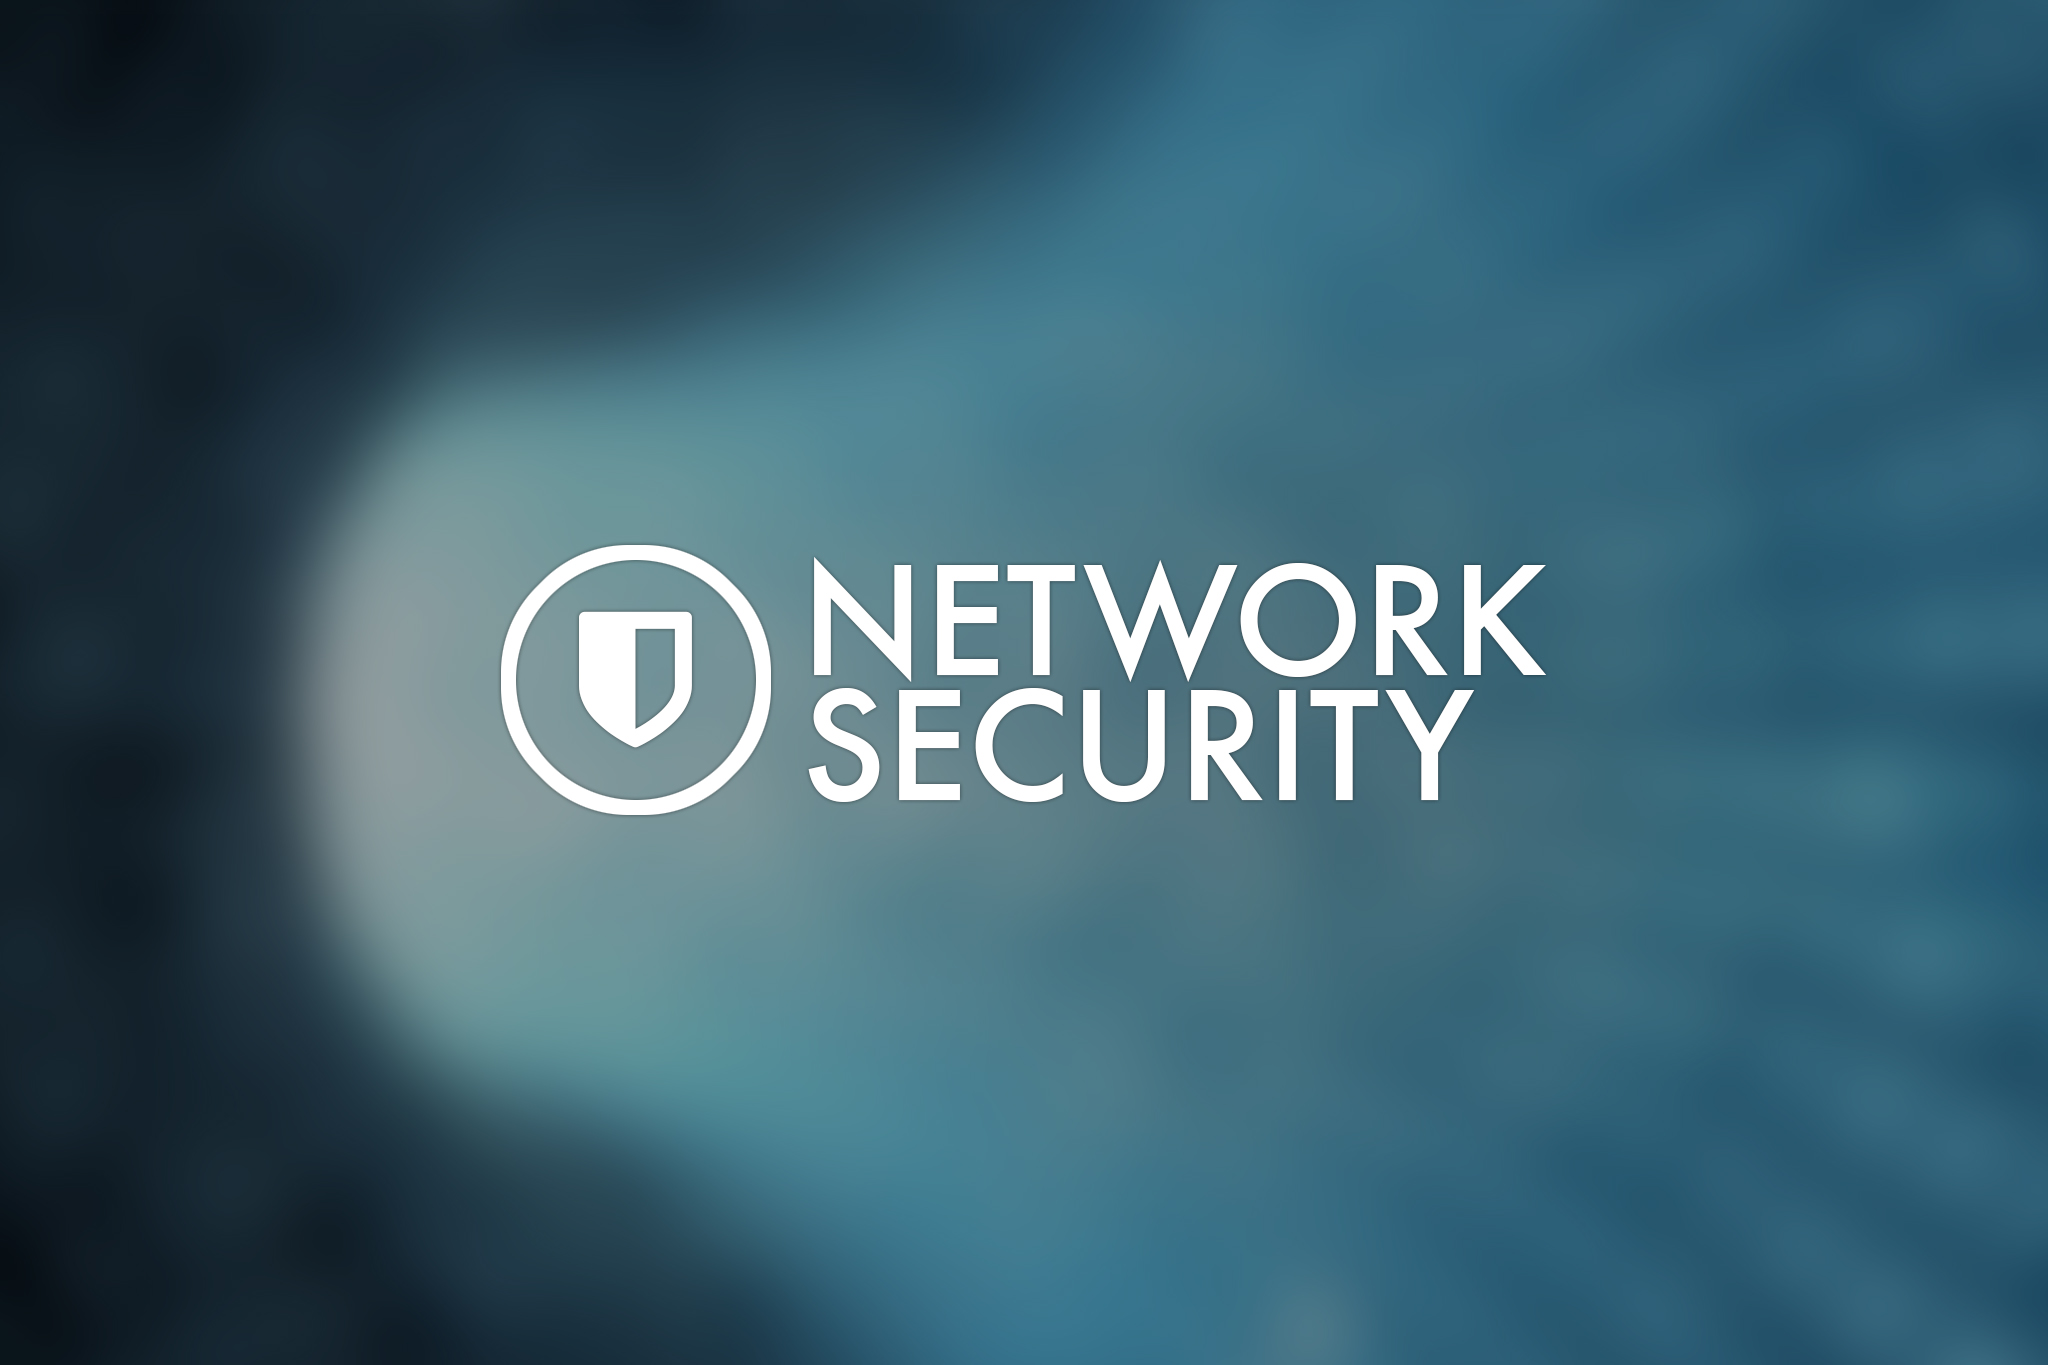 security of a network Professional security knowledge network whether you're an individual looking to launch a new career or a company with employees around the globe, pskn has your training solution working with security, investigation, and public safety experts, we provide online training and learning services to develop the skills and knowledge most needed by.